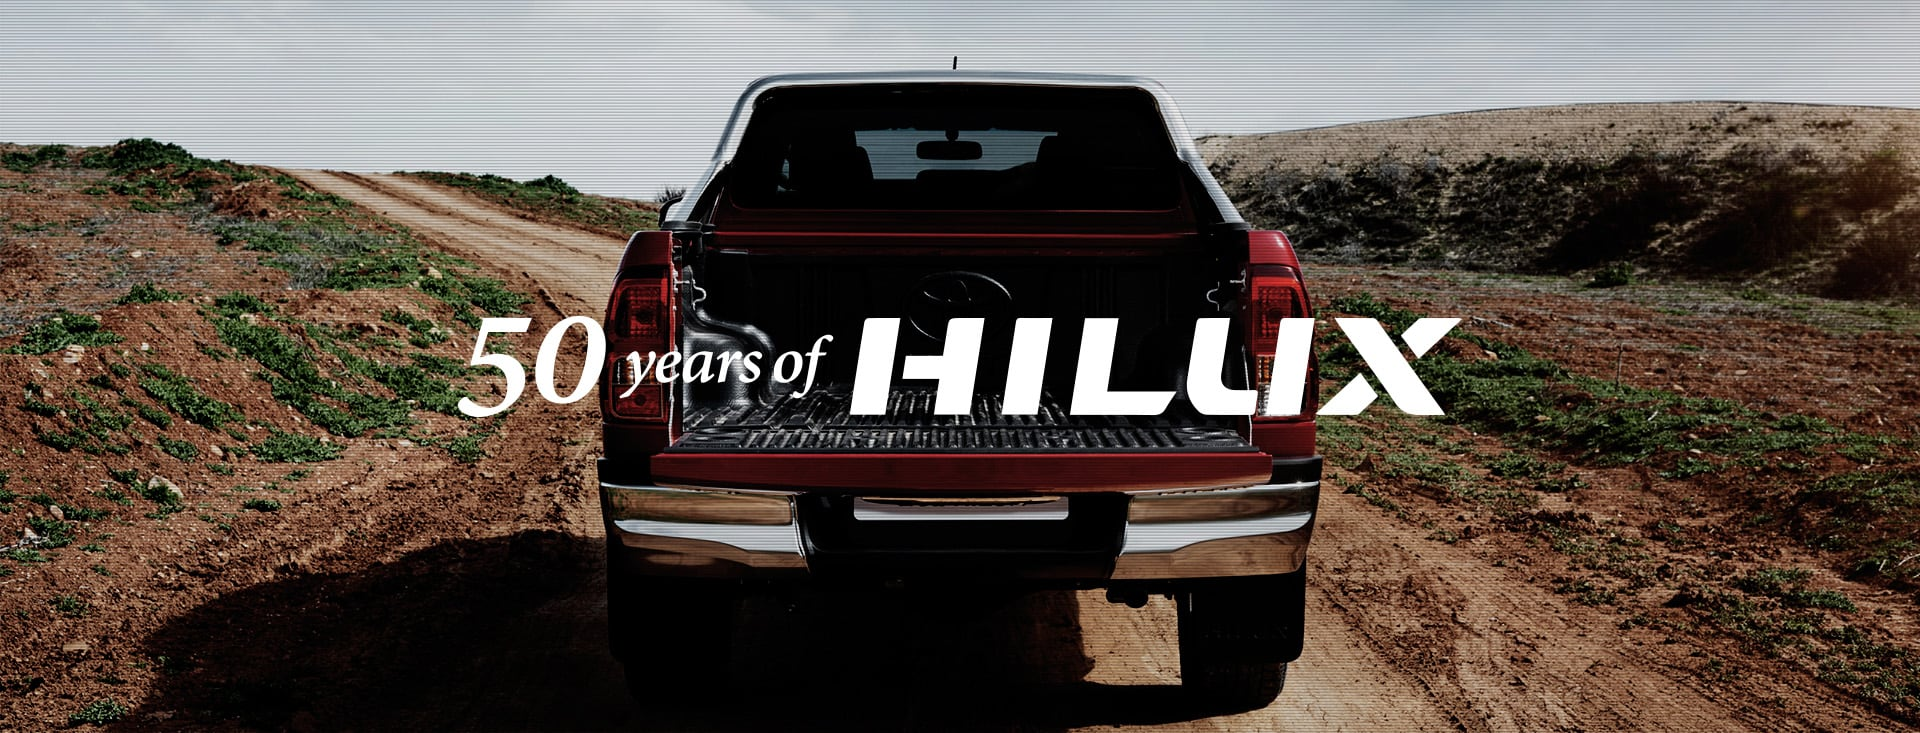 Hilux 50th Anniversary Special Website